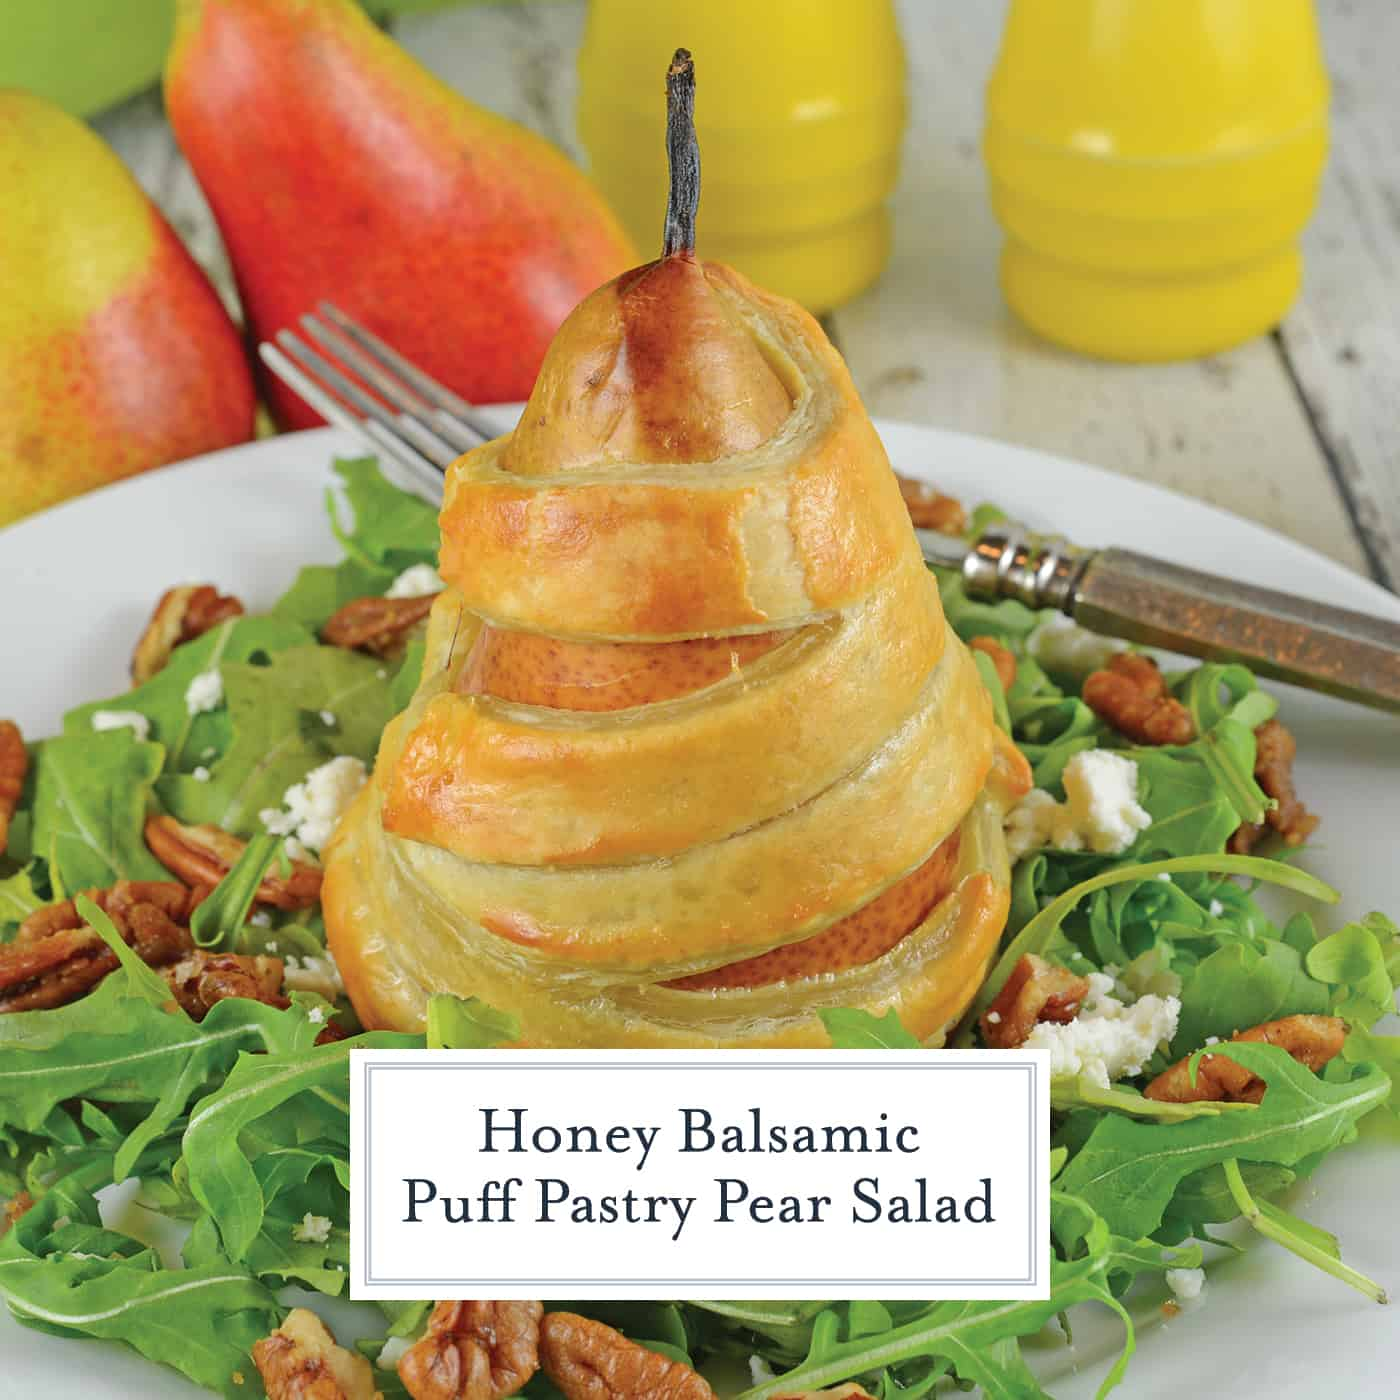 Pear Salad with Candied Walnuts, Honey Balsamic Dressing and tart goat cheese makes the perfect winter salad for dinner parties and holidays. #pearsalad #pearrecipes #bakedpears www.savoryexperiments.com